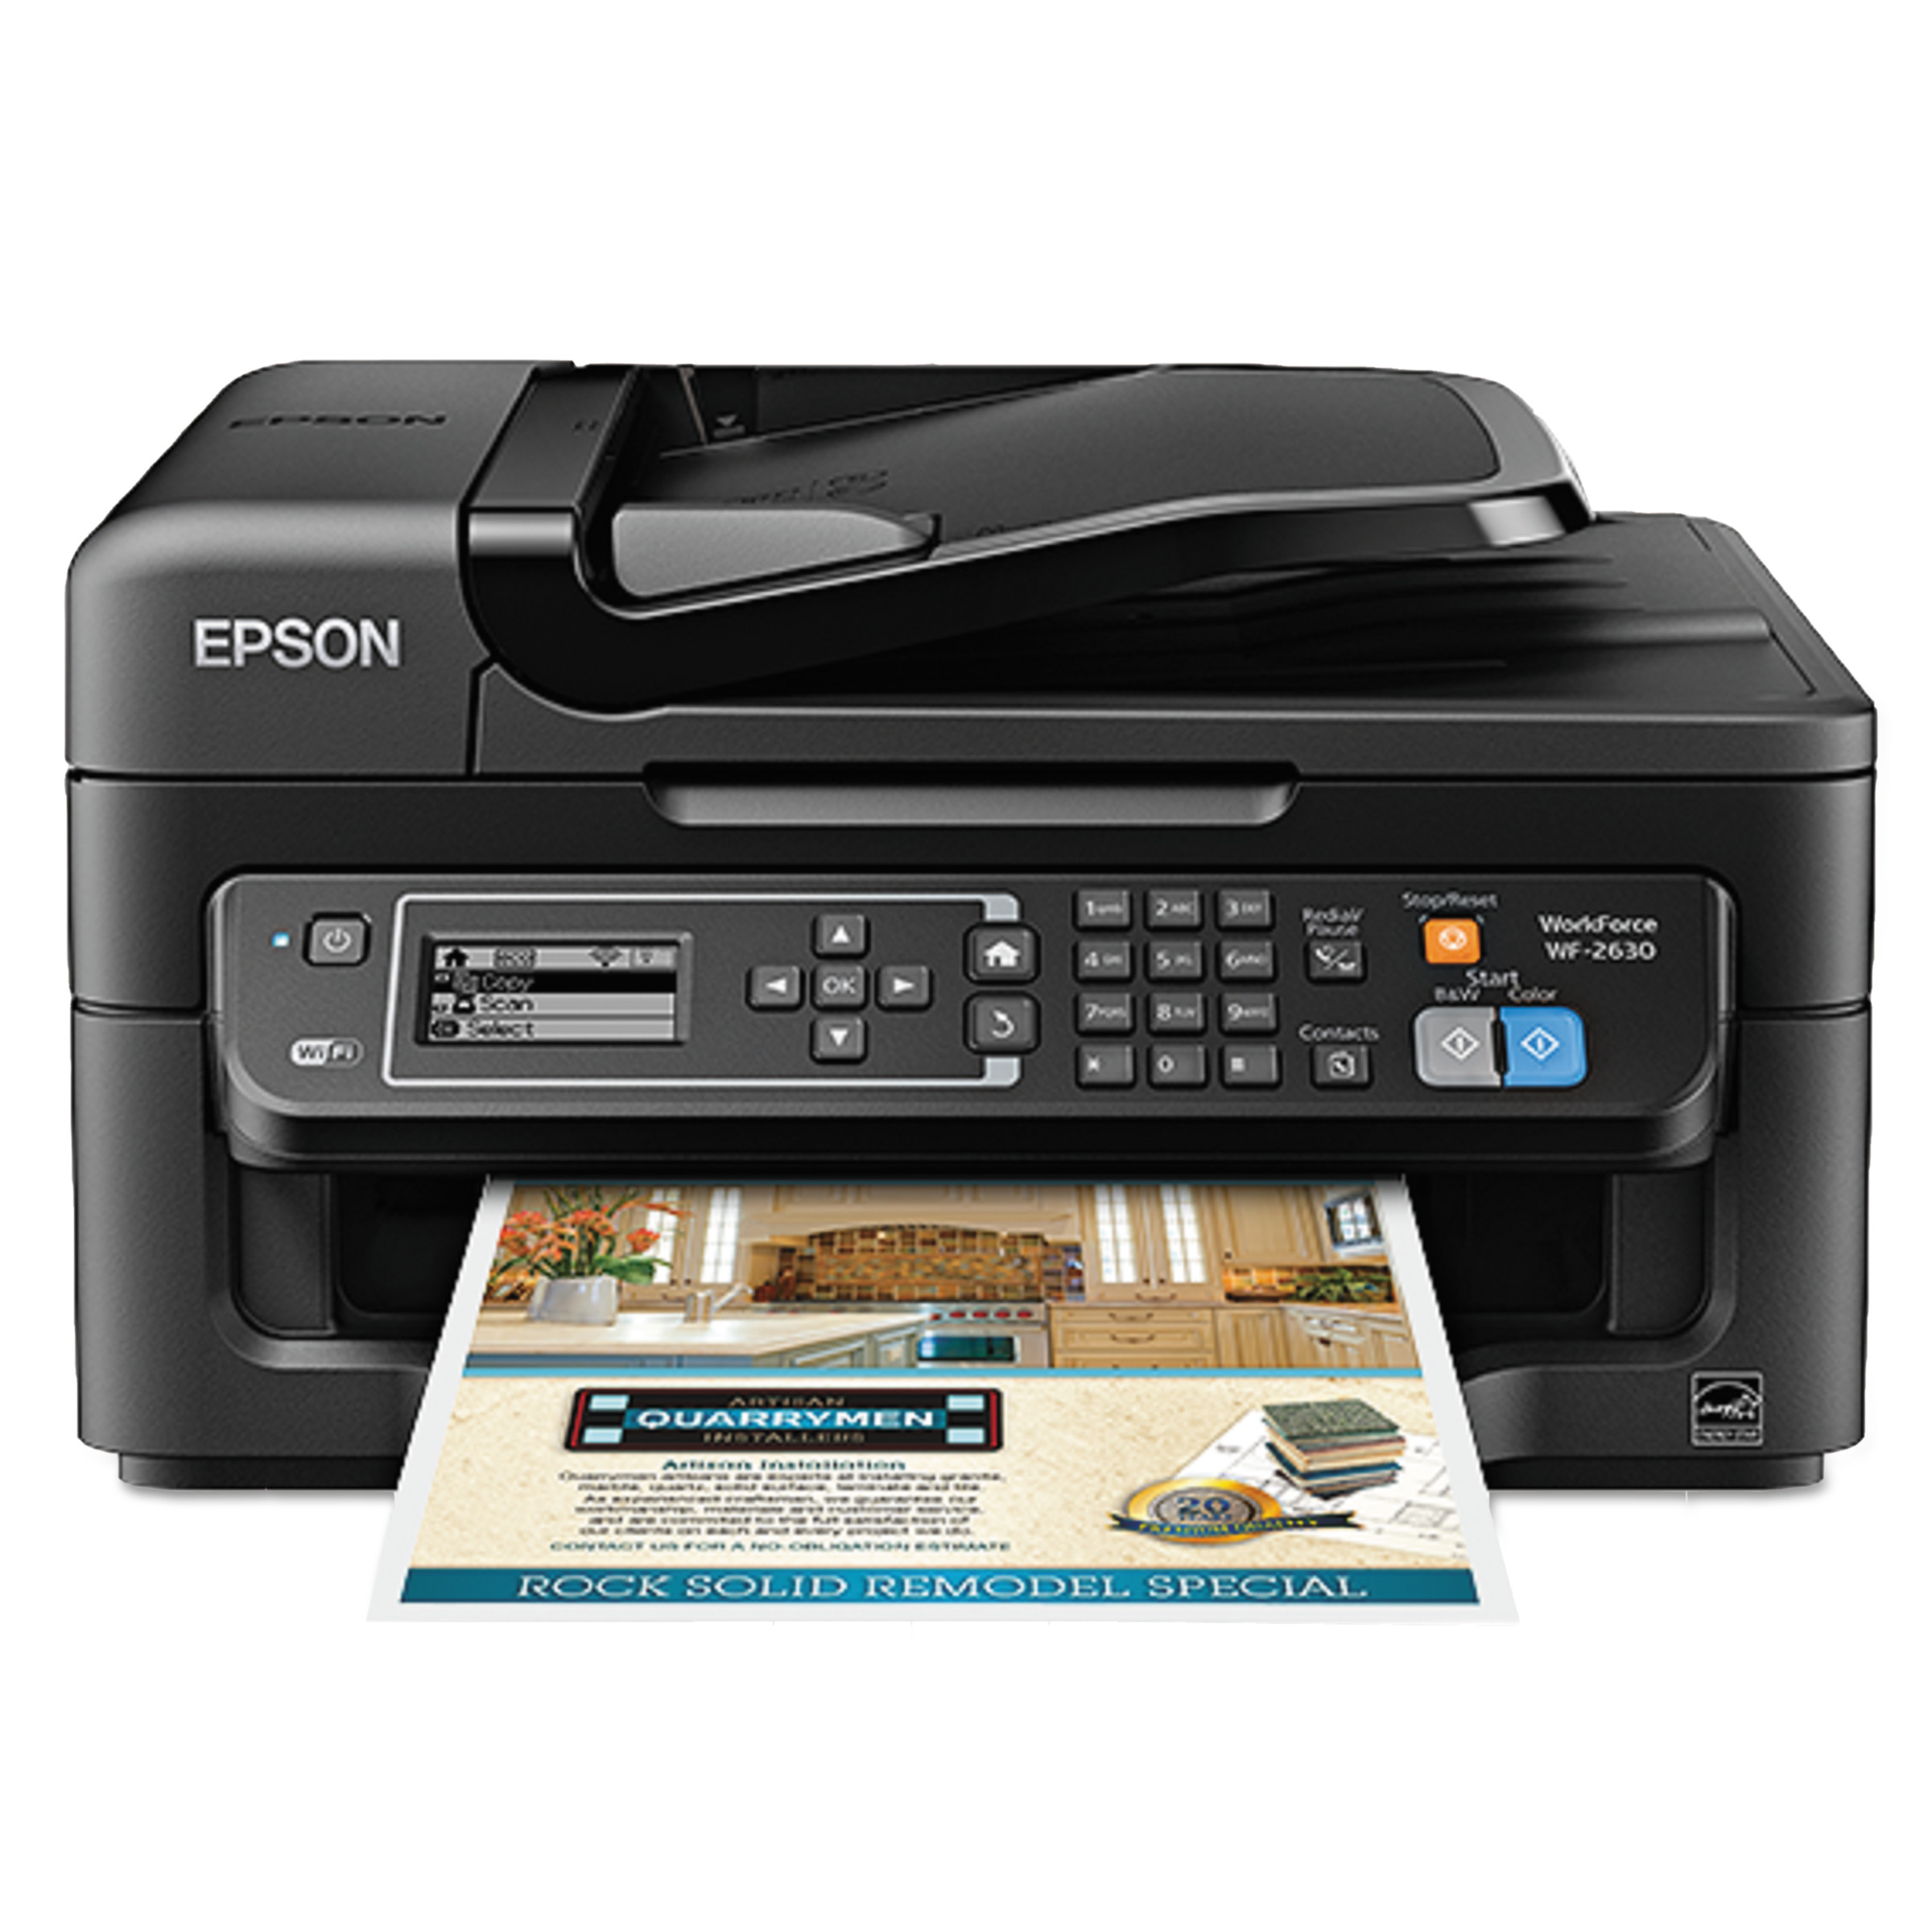 Epson WorkForce WF-2630 AIO Printer, Black by Epson